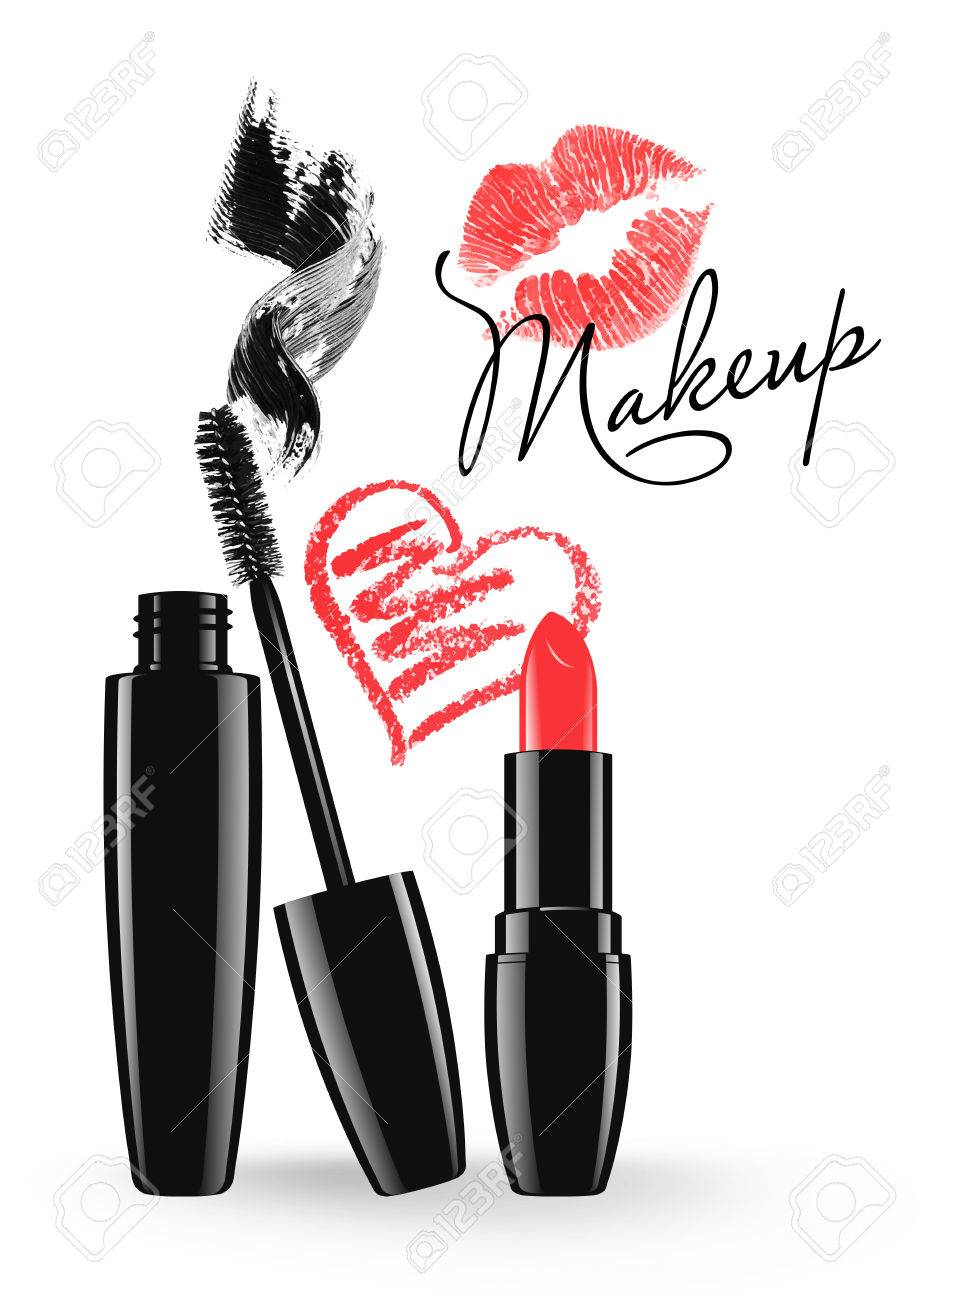 Cosmetic product design vector illustration. Makeup mascara tube, brush and stain, red lipstick and doodle heart isolated over white background - 61350664